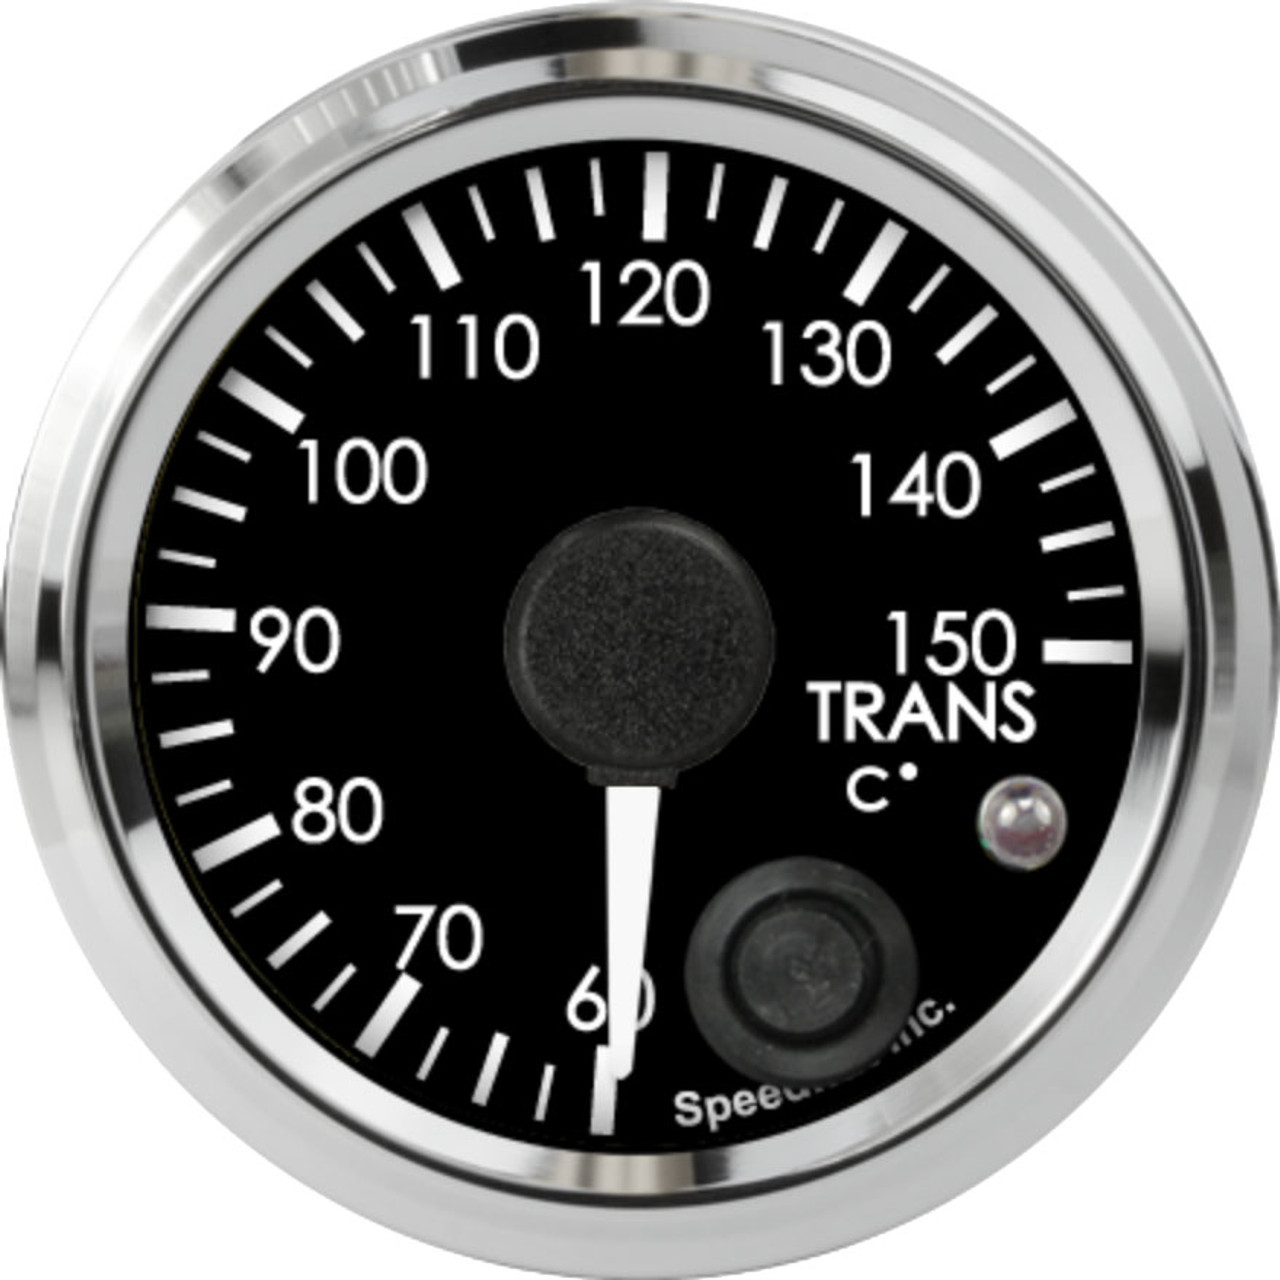 """2-1/16"""" Freedom CAN-BUS Trans Temp Gauge 60-150C Metric (w/ warning) (For GM vehicles only)"""